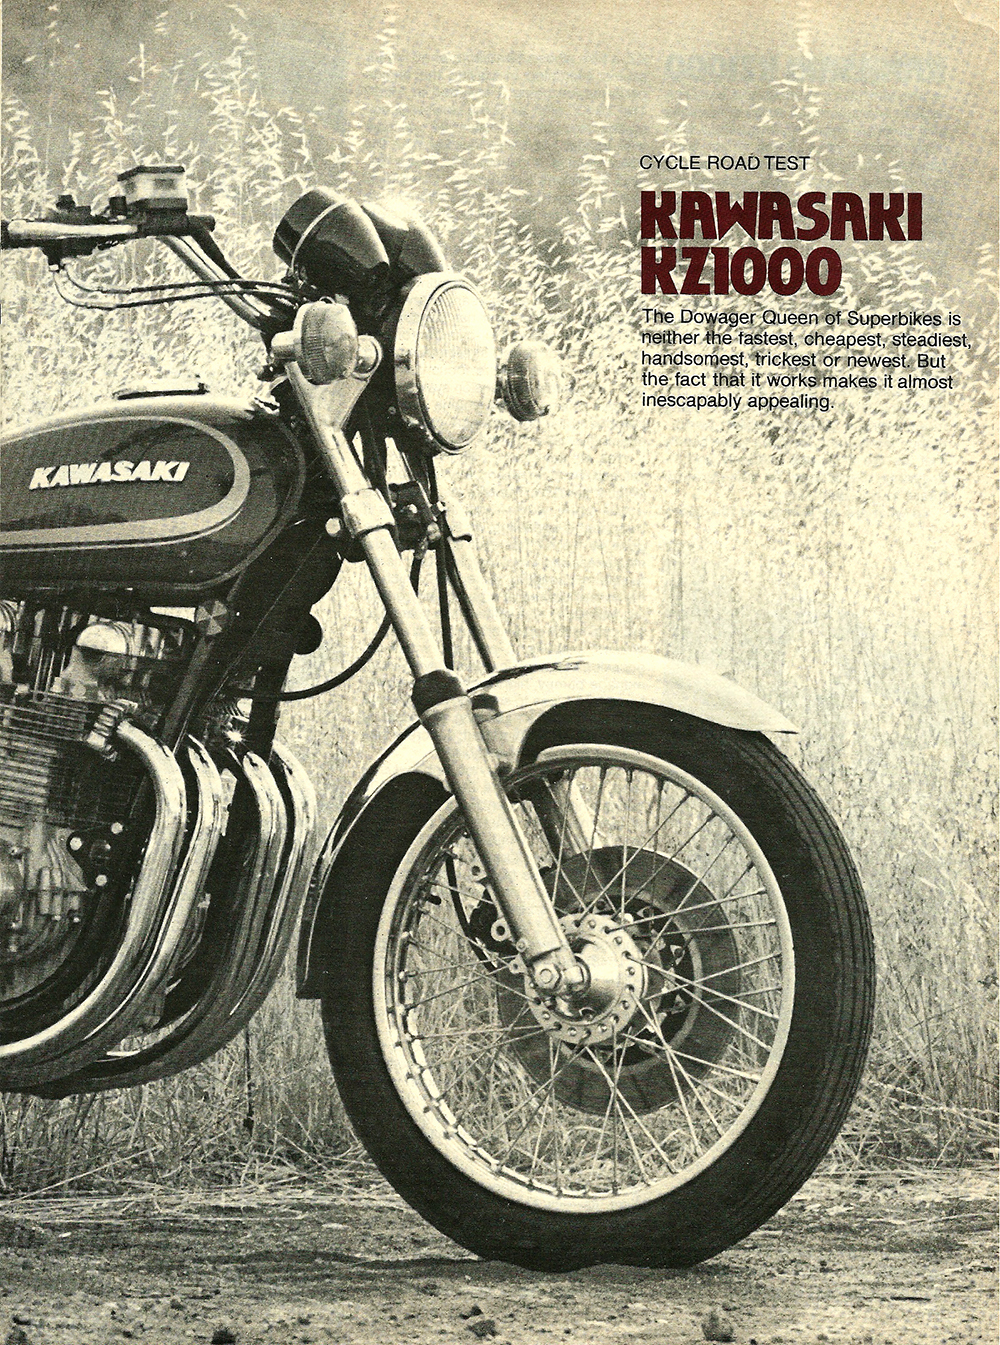 1978 Kawasaki KZ1000 road test 02.jpg